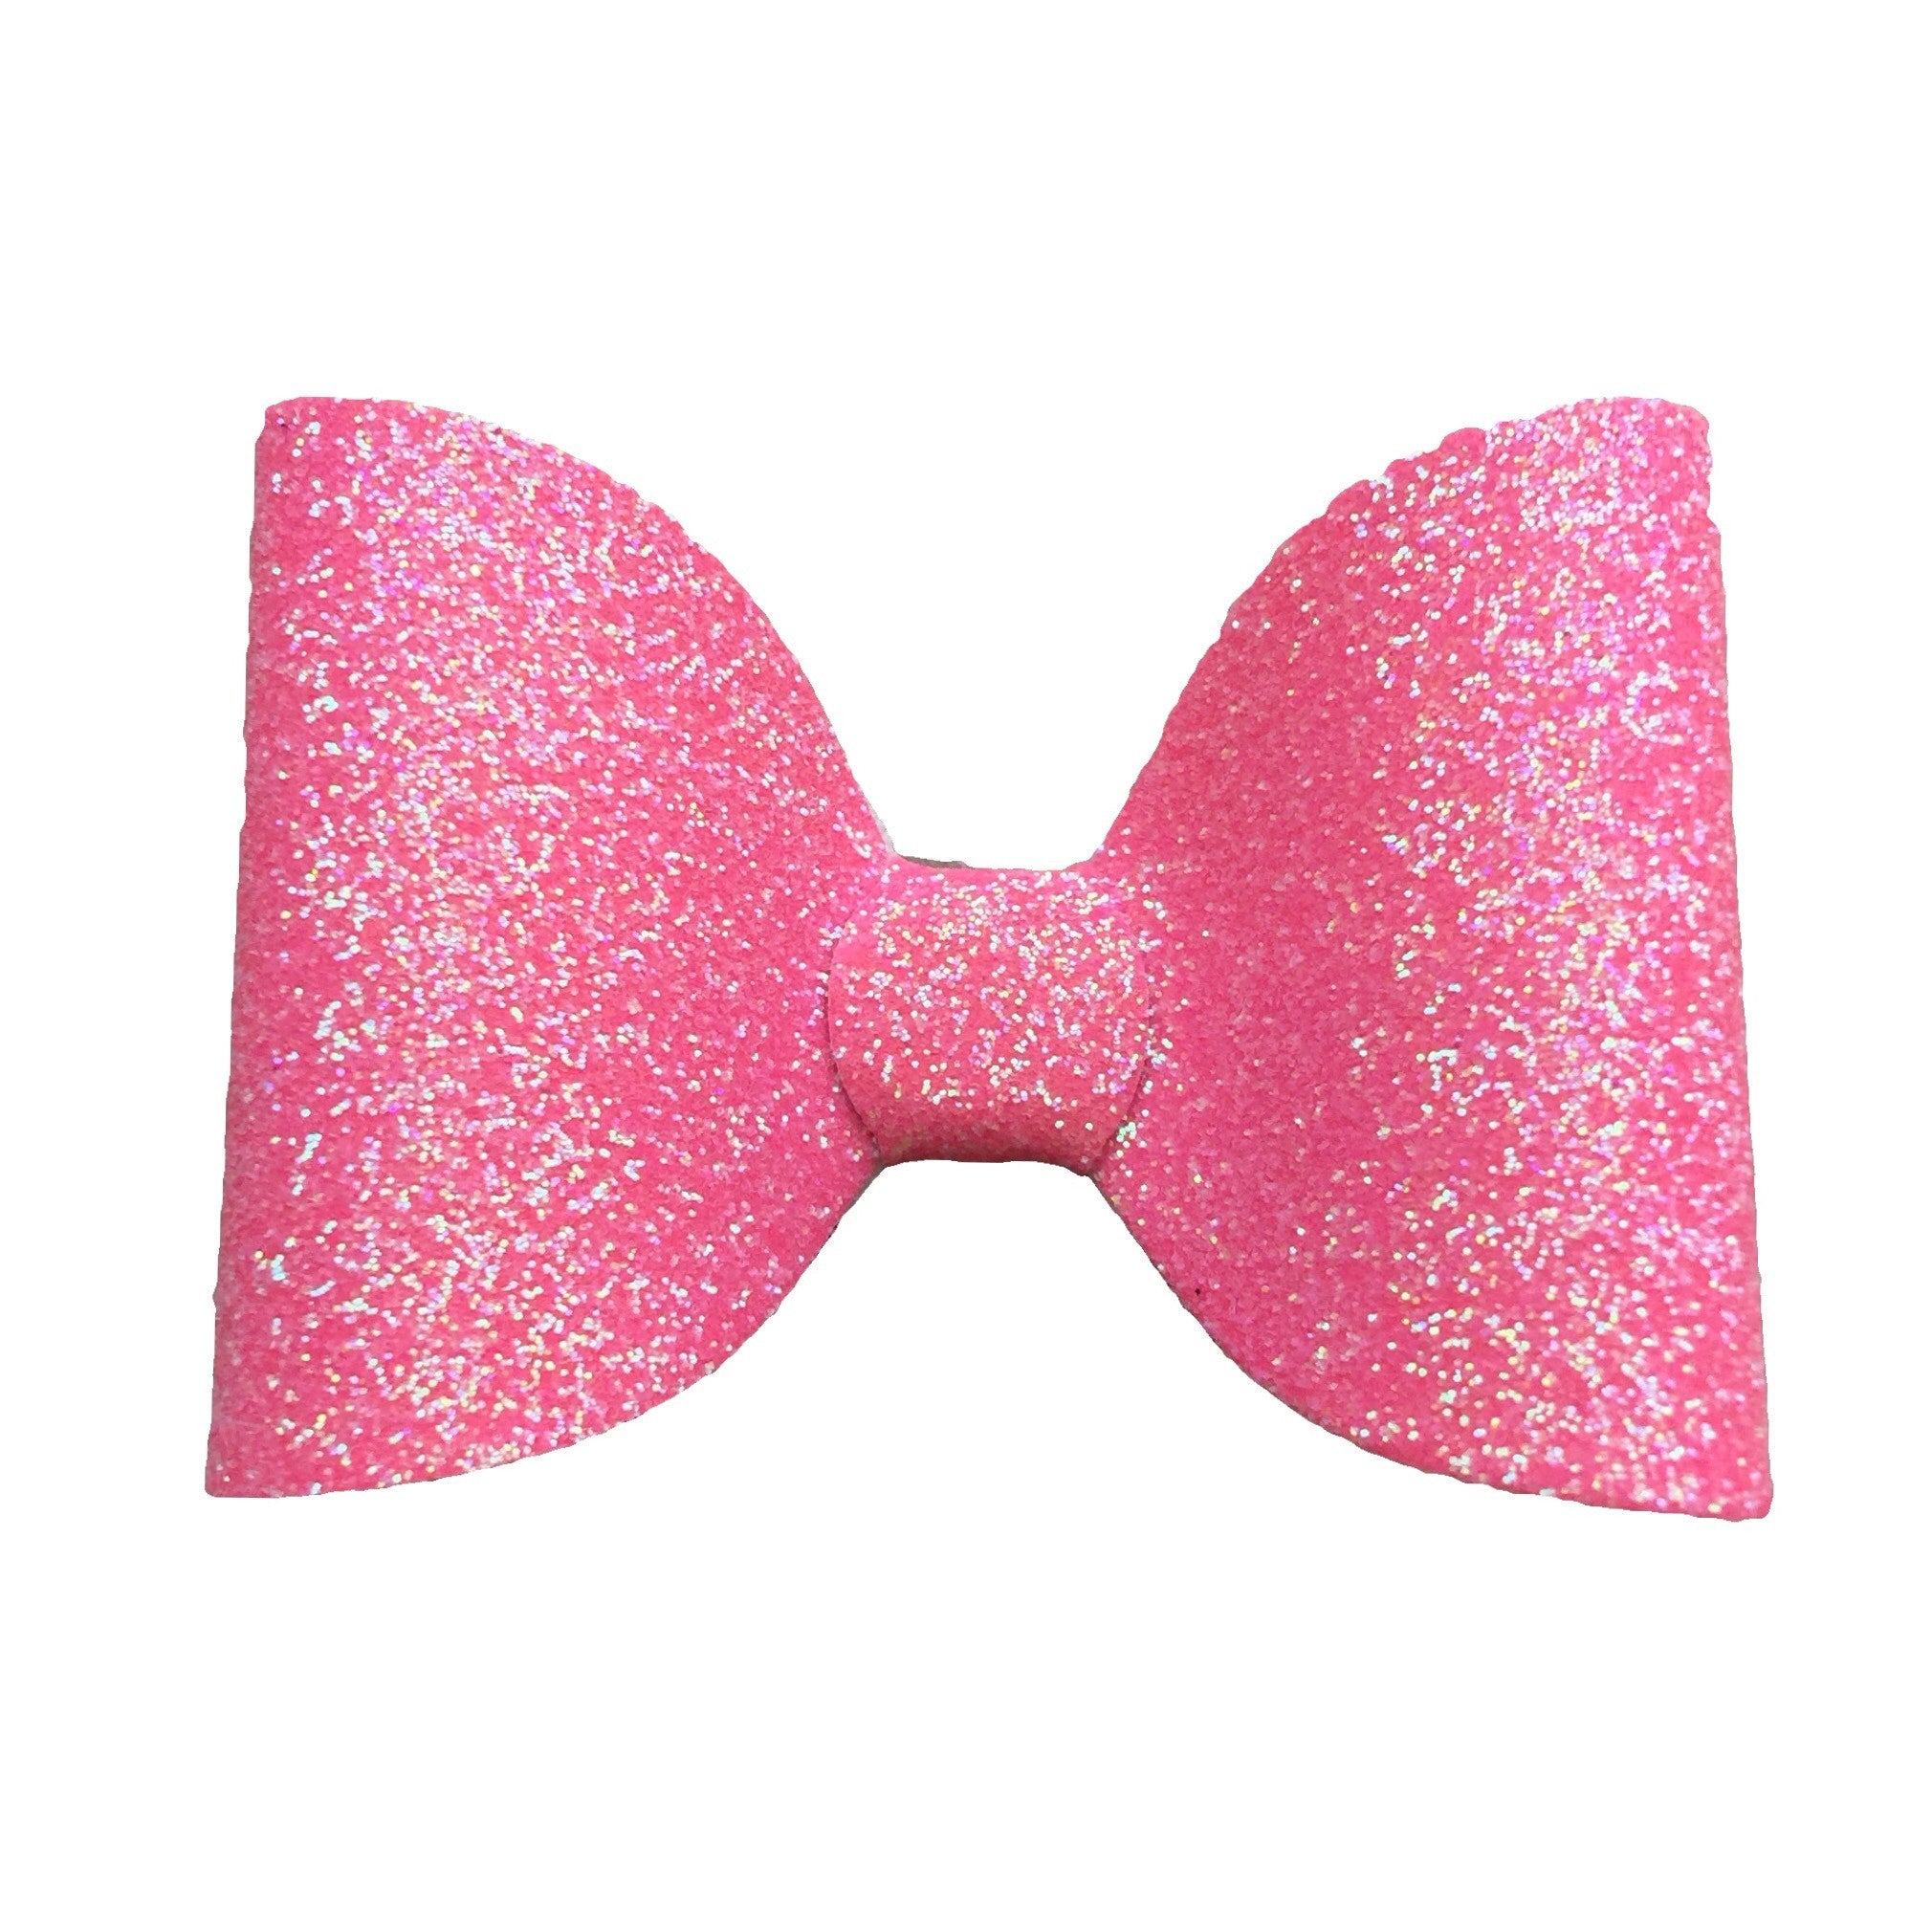 Medium Glitter Hair Bow - Pink - Cutie Bowtutie